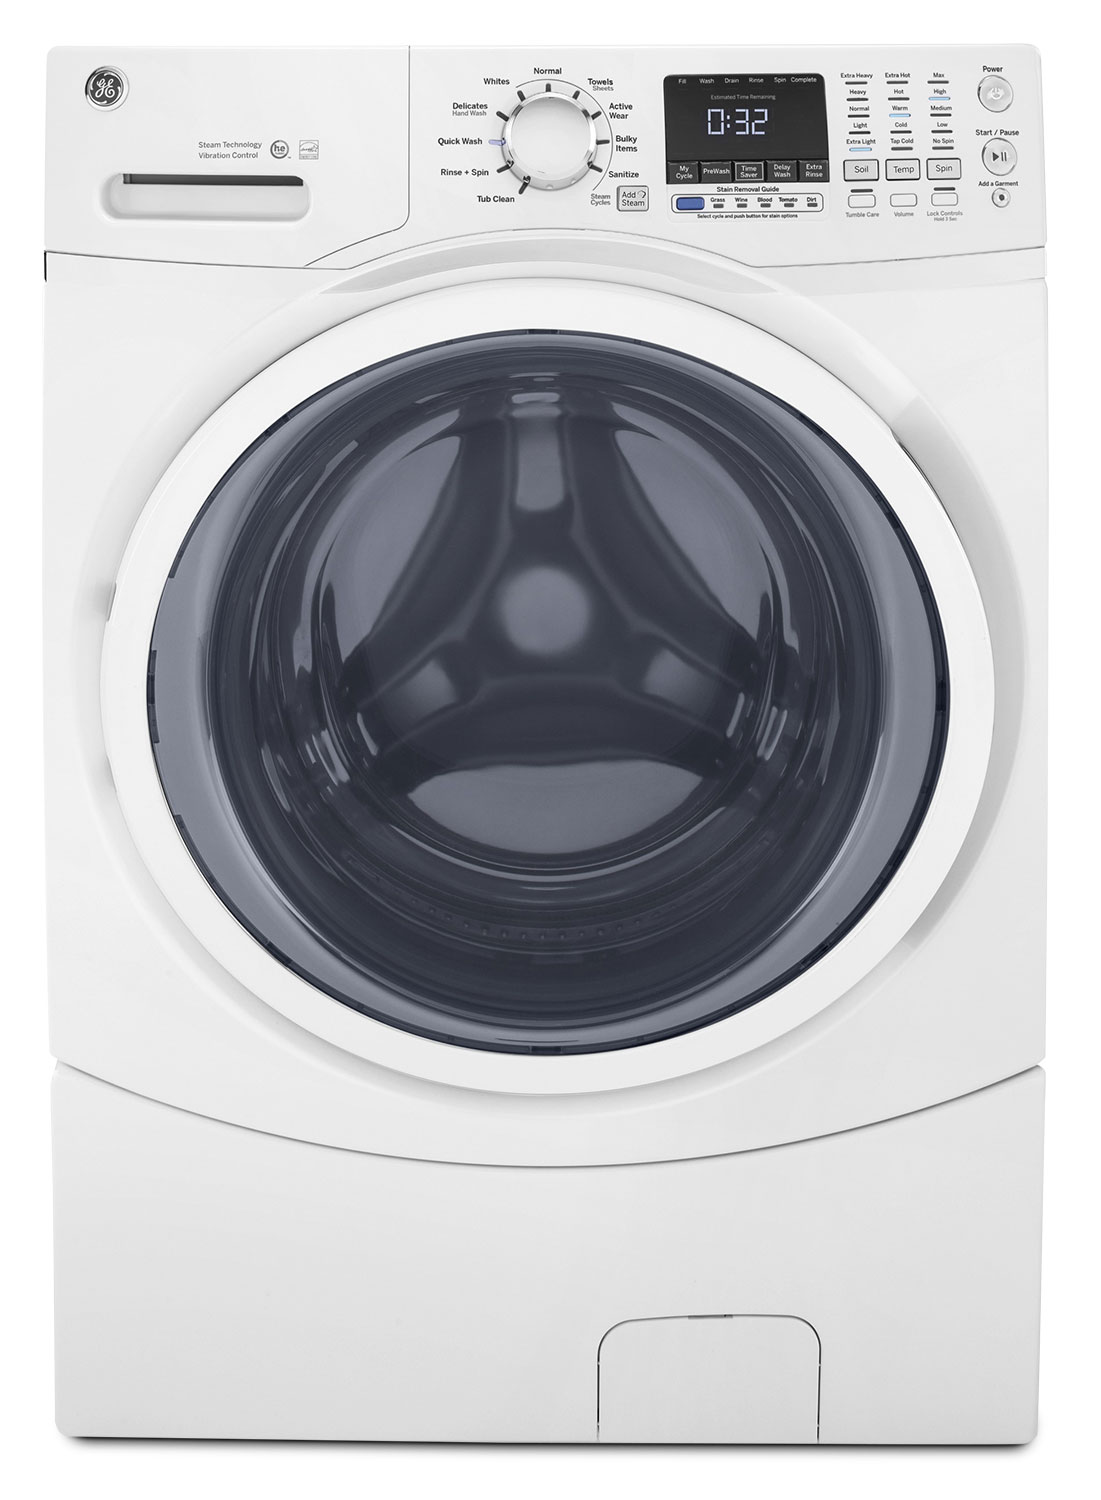 GE 5.2 Cu. Ft. Front-Load Washer – GFW450SSKWW